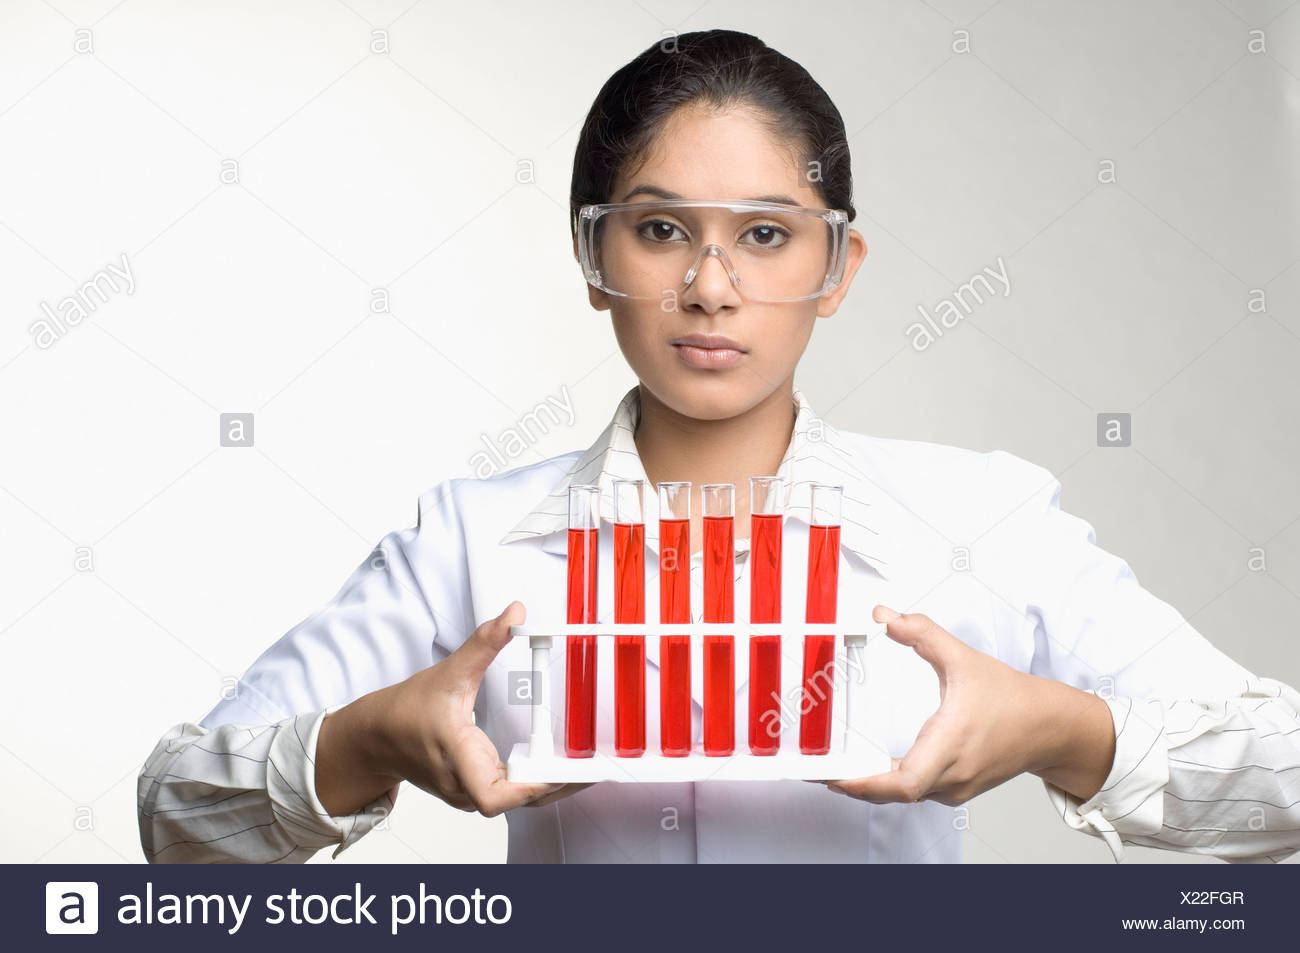 Portrait of a female lab technician holding a test tube rack - Stock Image